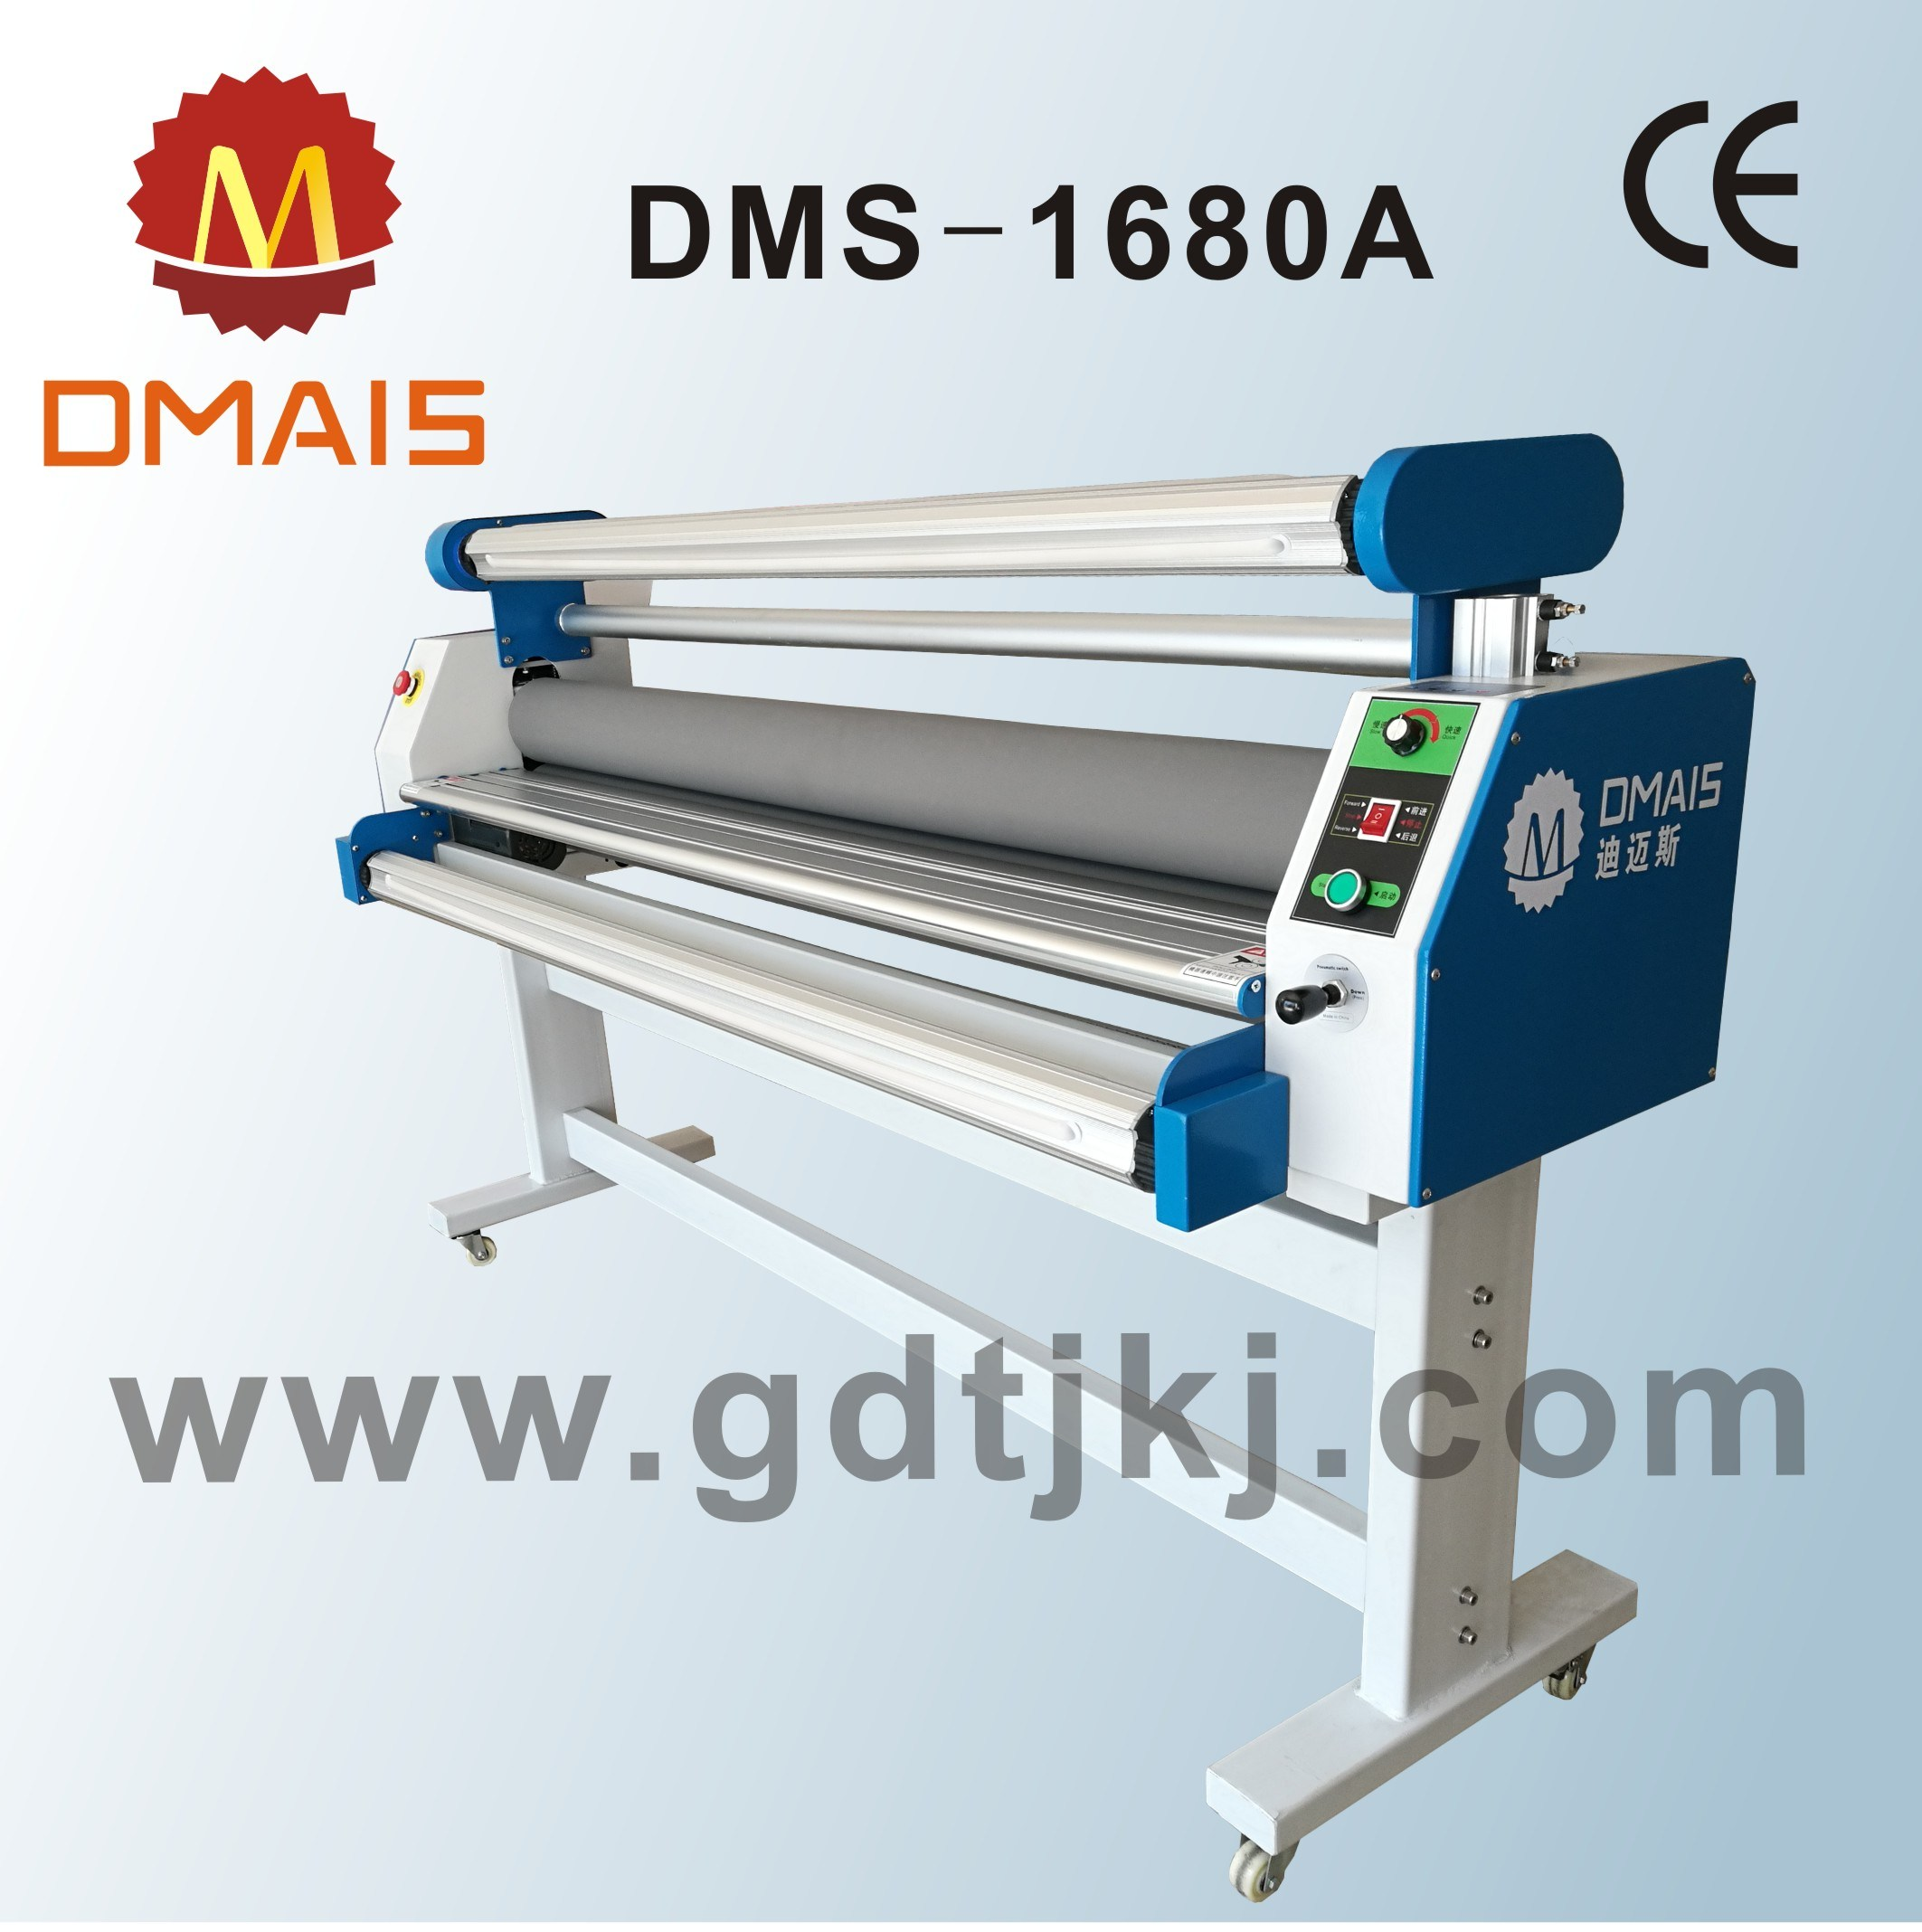 DMS-1680A 1.6m Full Automatic Roll to Roll Film Laminating Machine